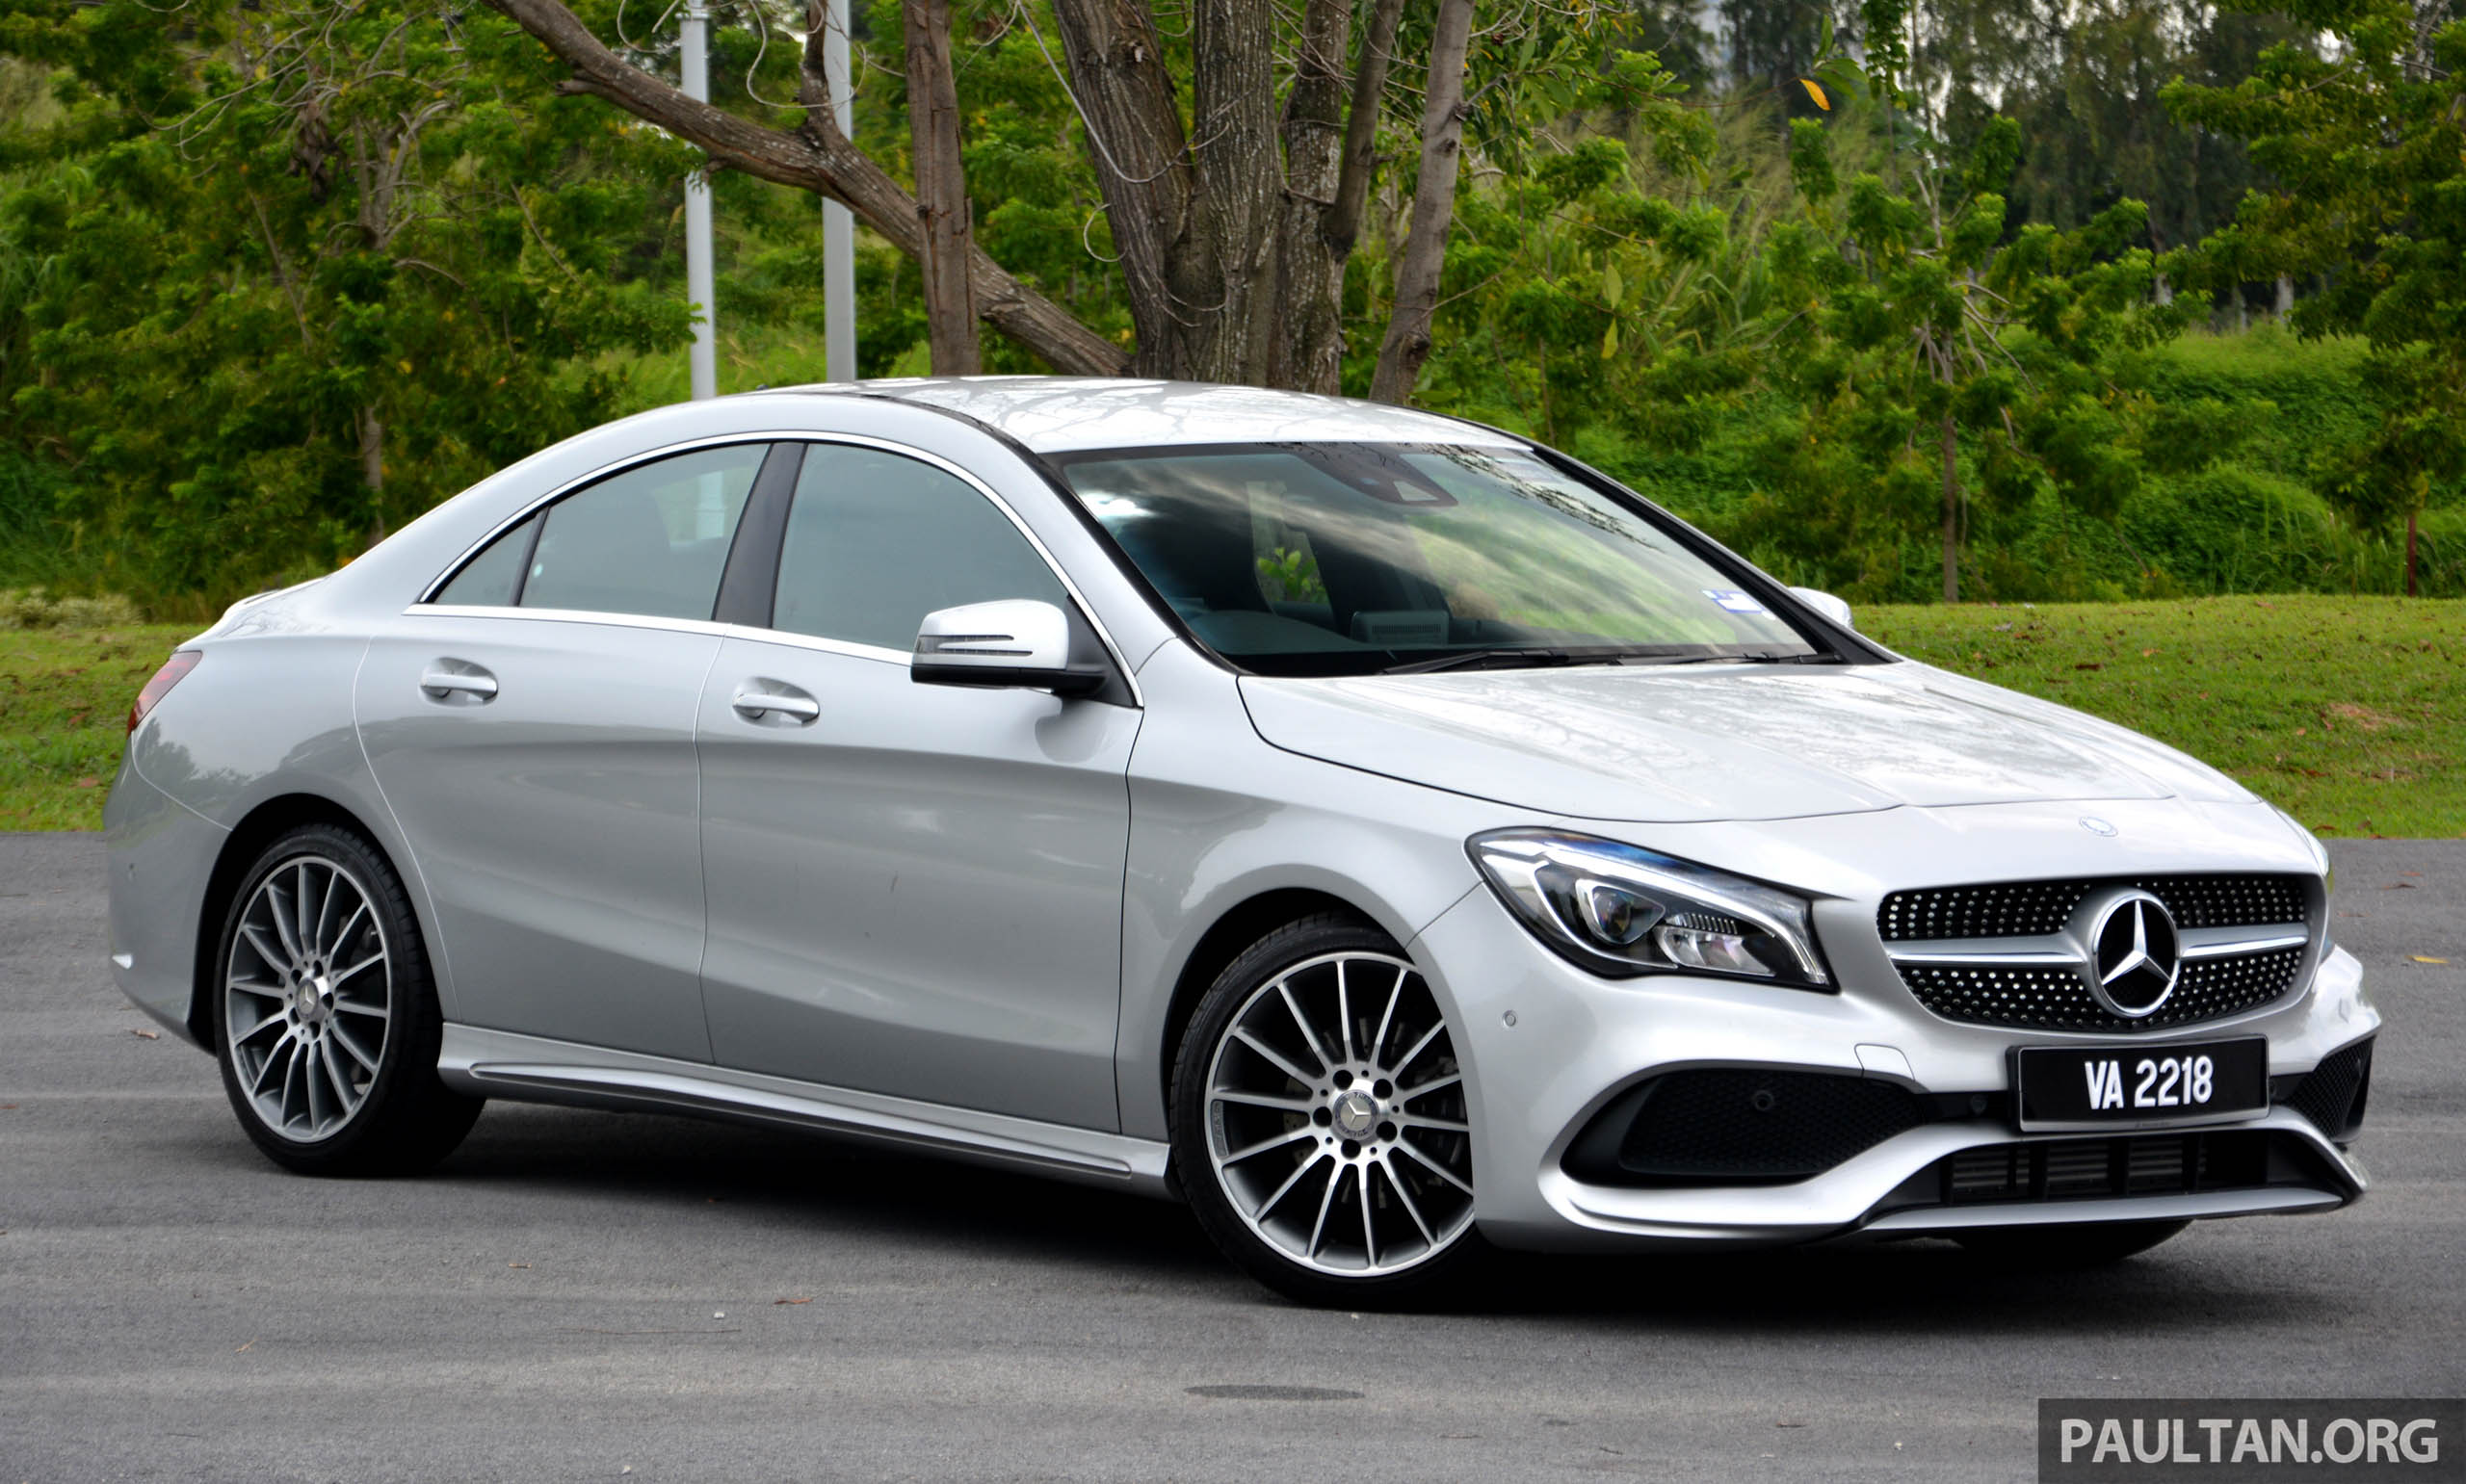 试驾:mercedes Benz Cla 200,酷帅外型,年轻最爱。 Mercedes Benz Cla 200